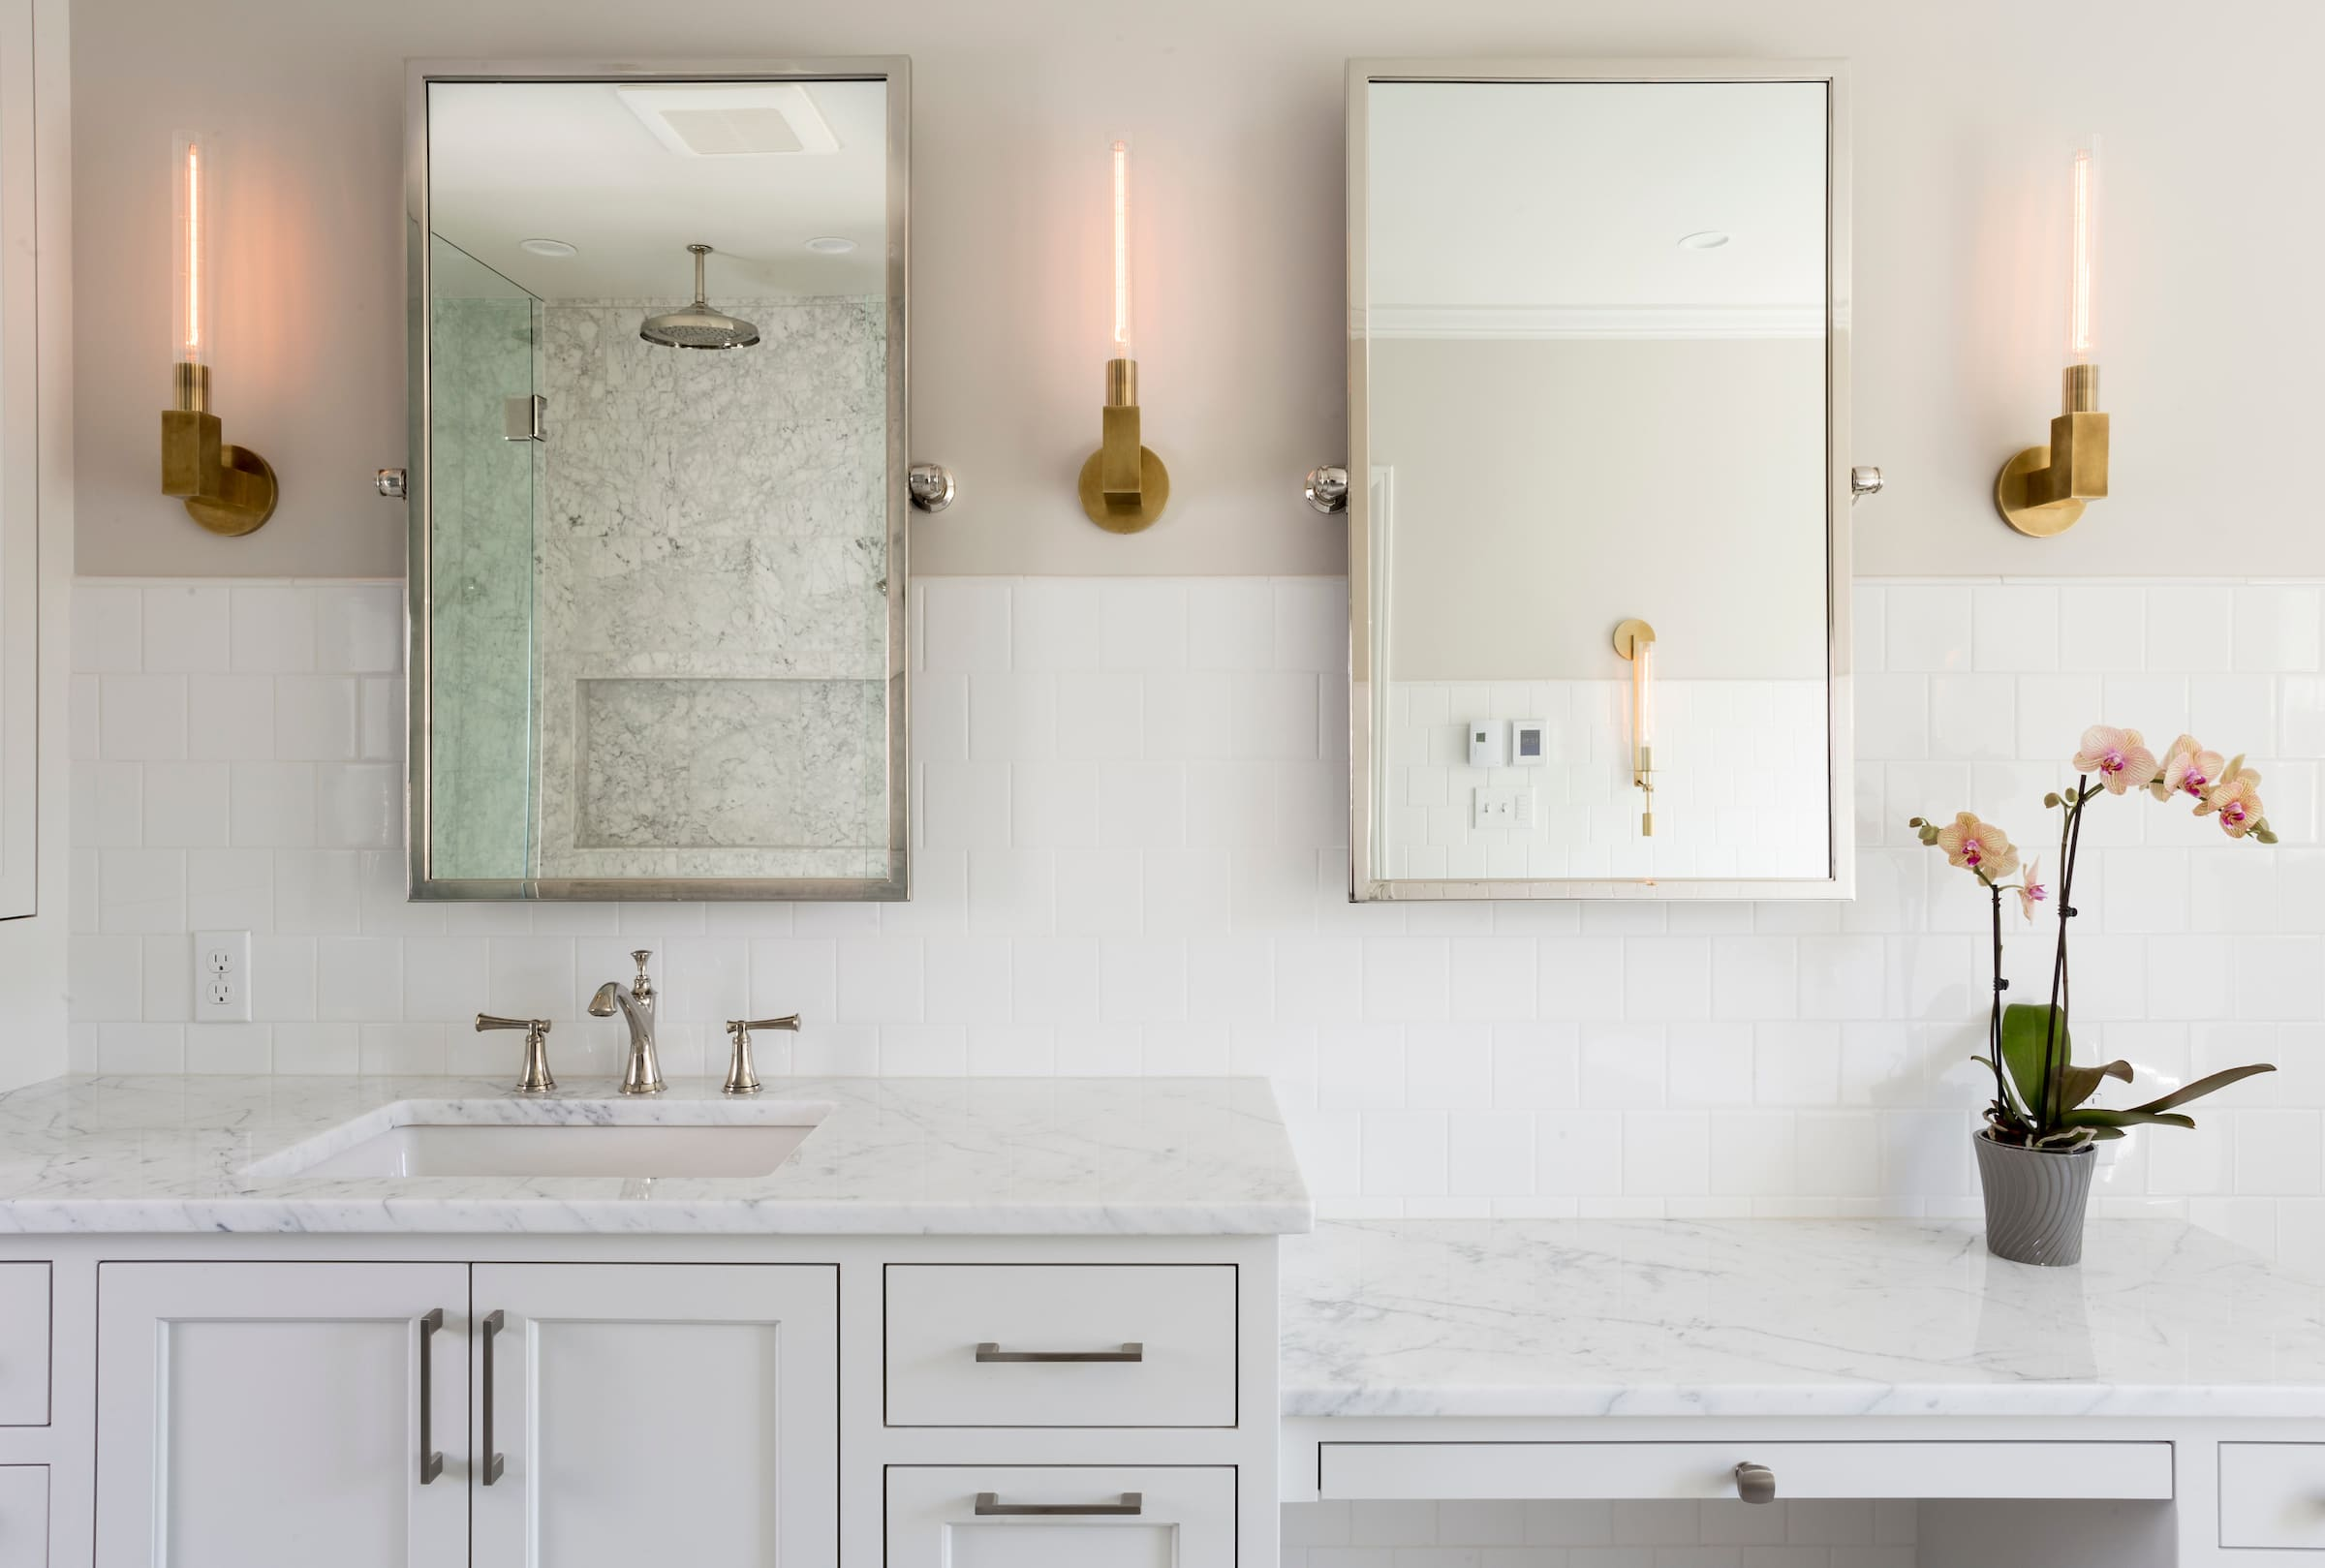 14 Must-Haves for Your Master Bathroom